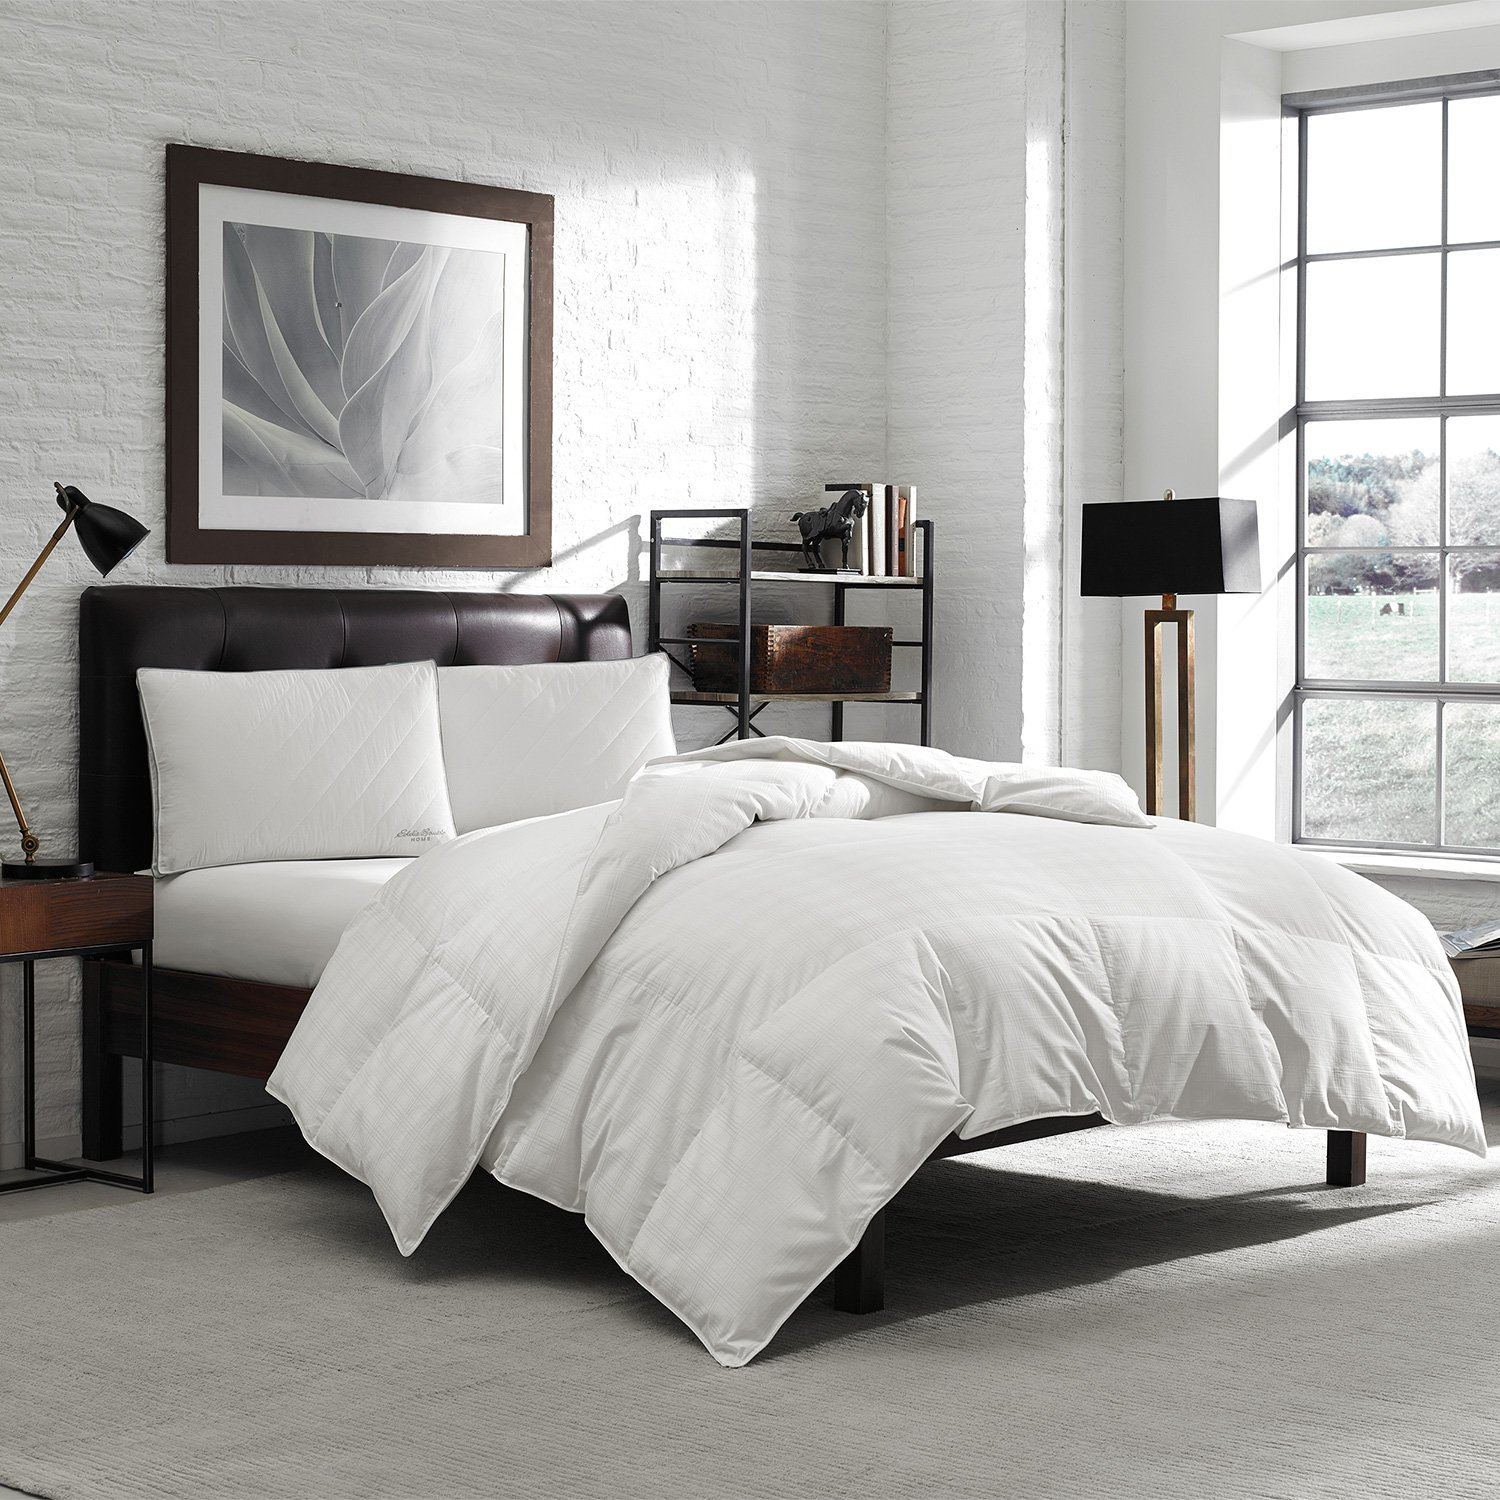 Eddie Bauer Luxury Hypoallergenic 650 Fill Power Lofty Down Comforter - 300 TC Damask Striped Cotton - Medium Warmth